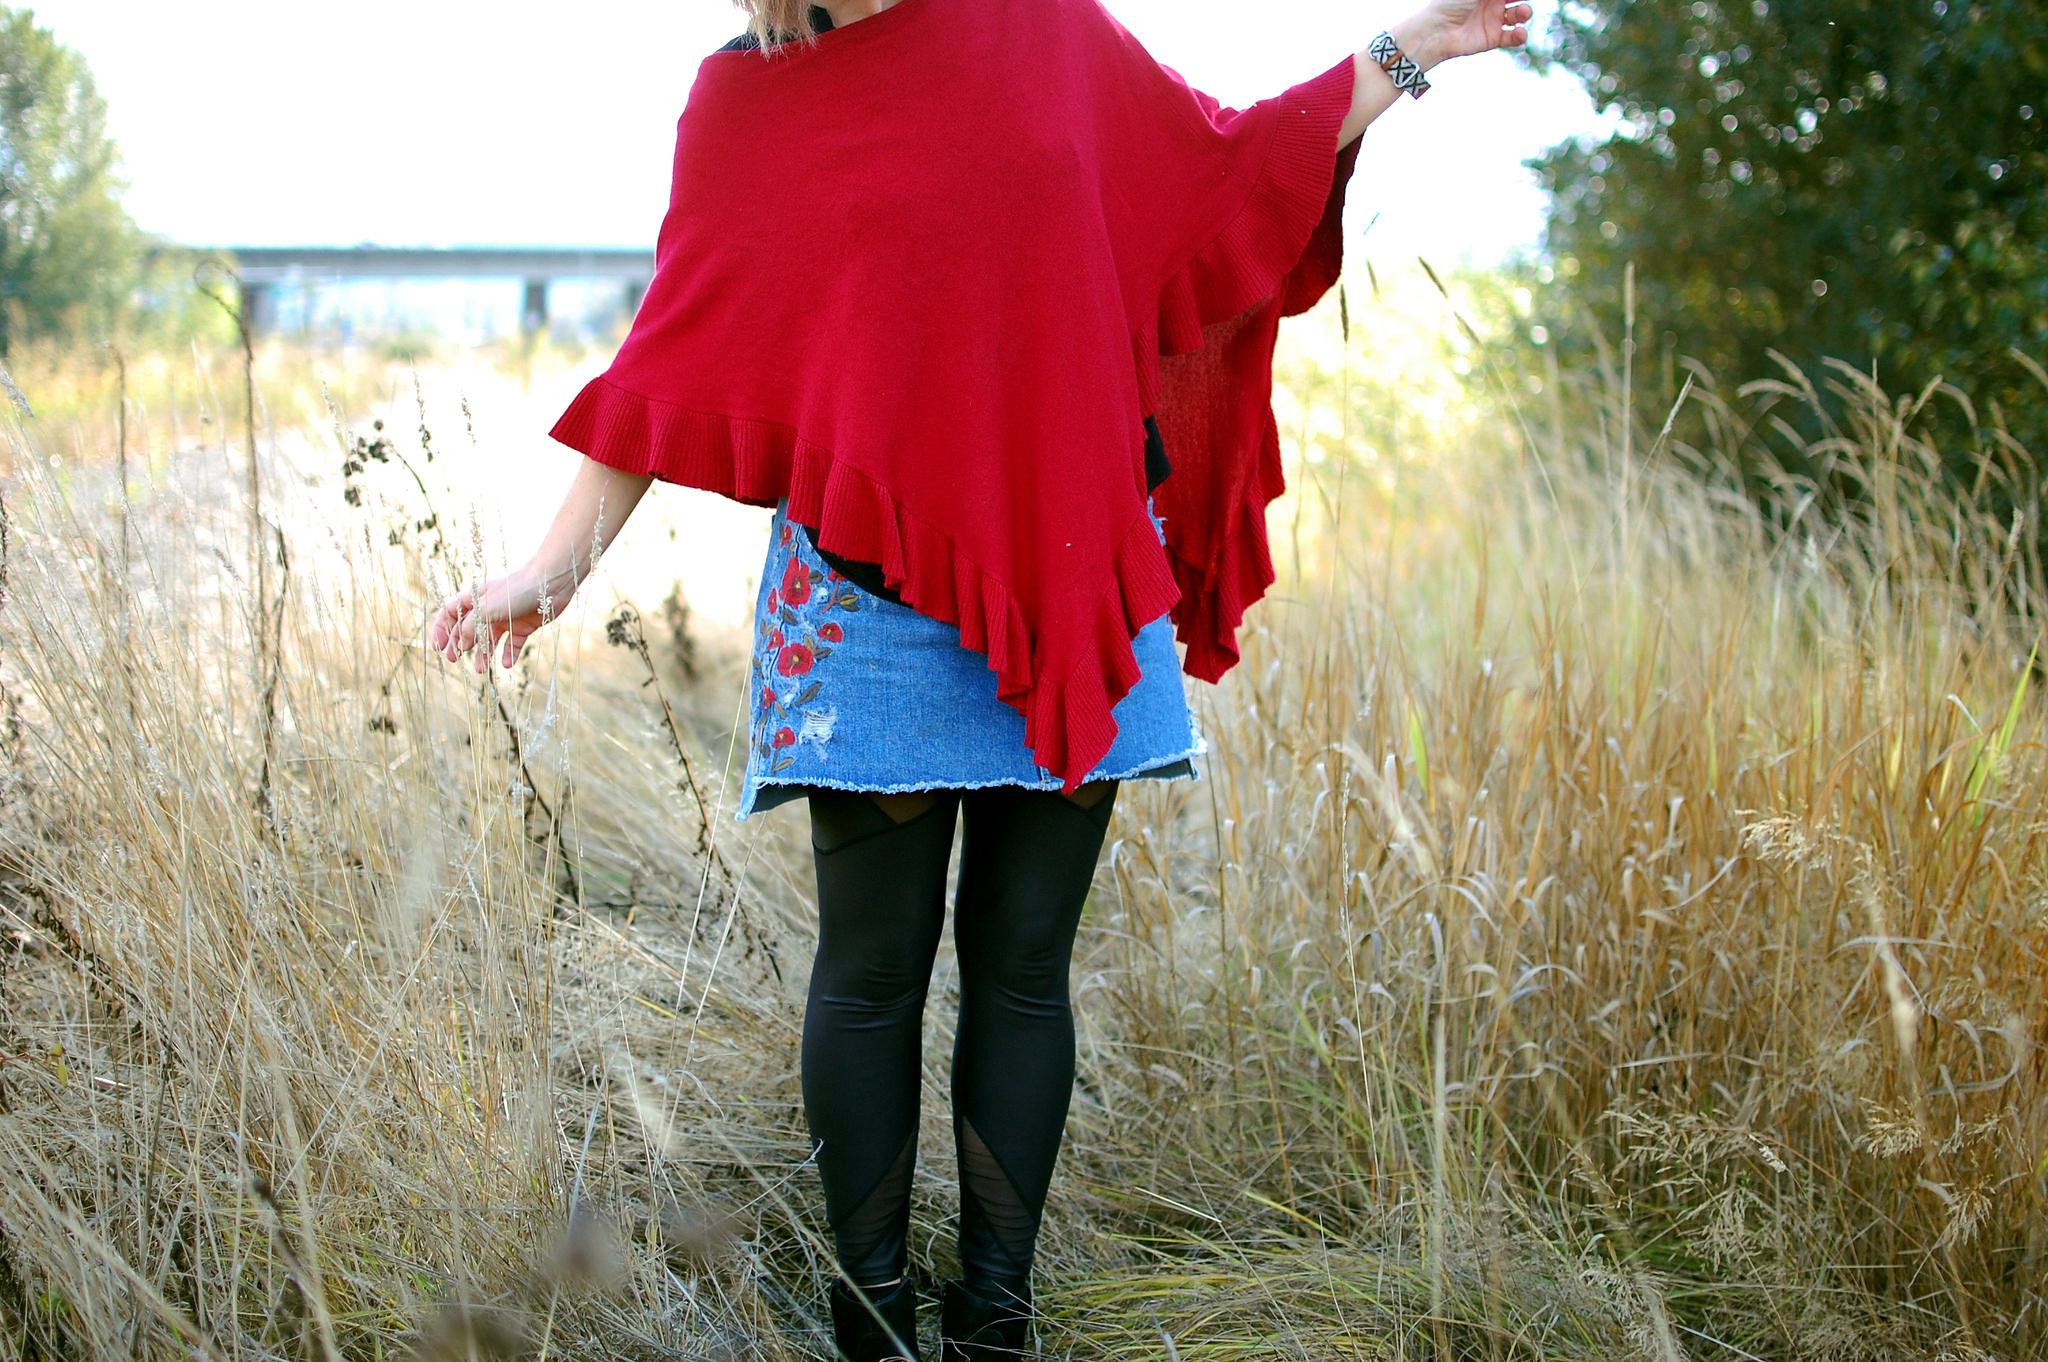 poncho embroidered denim skirt mesh insert leggings daily outfit blog ootd whatiwore2day